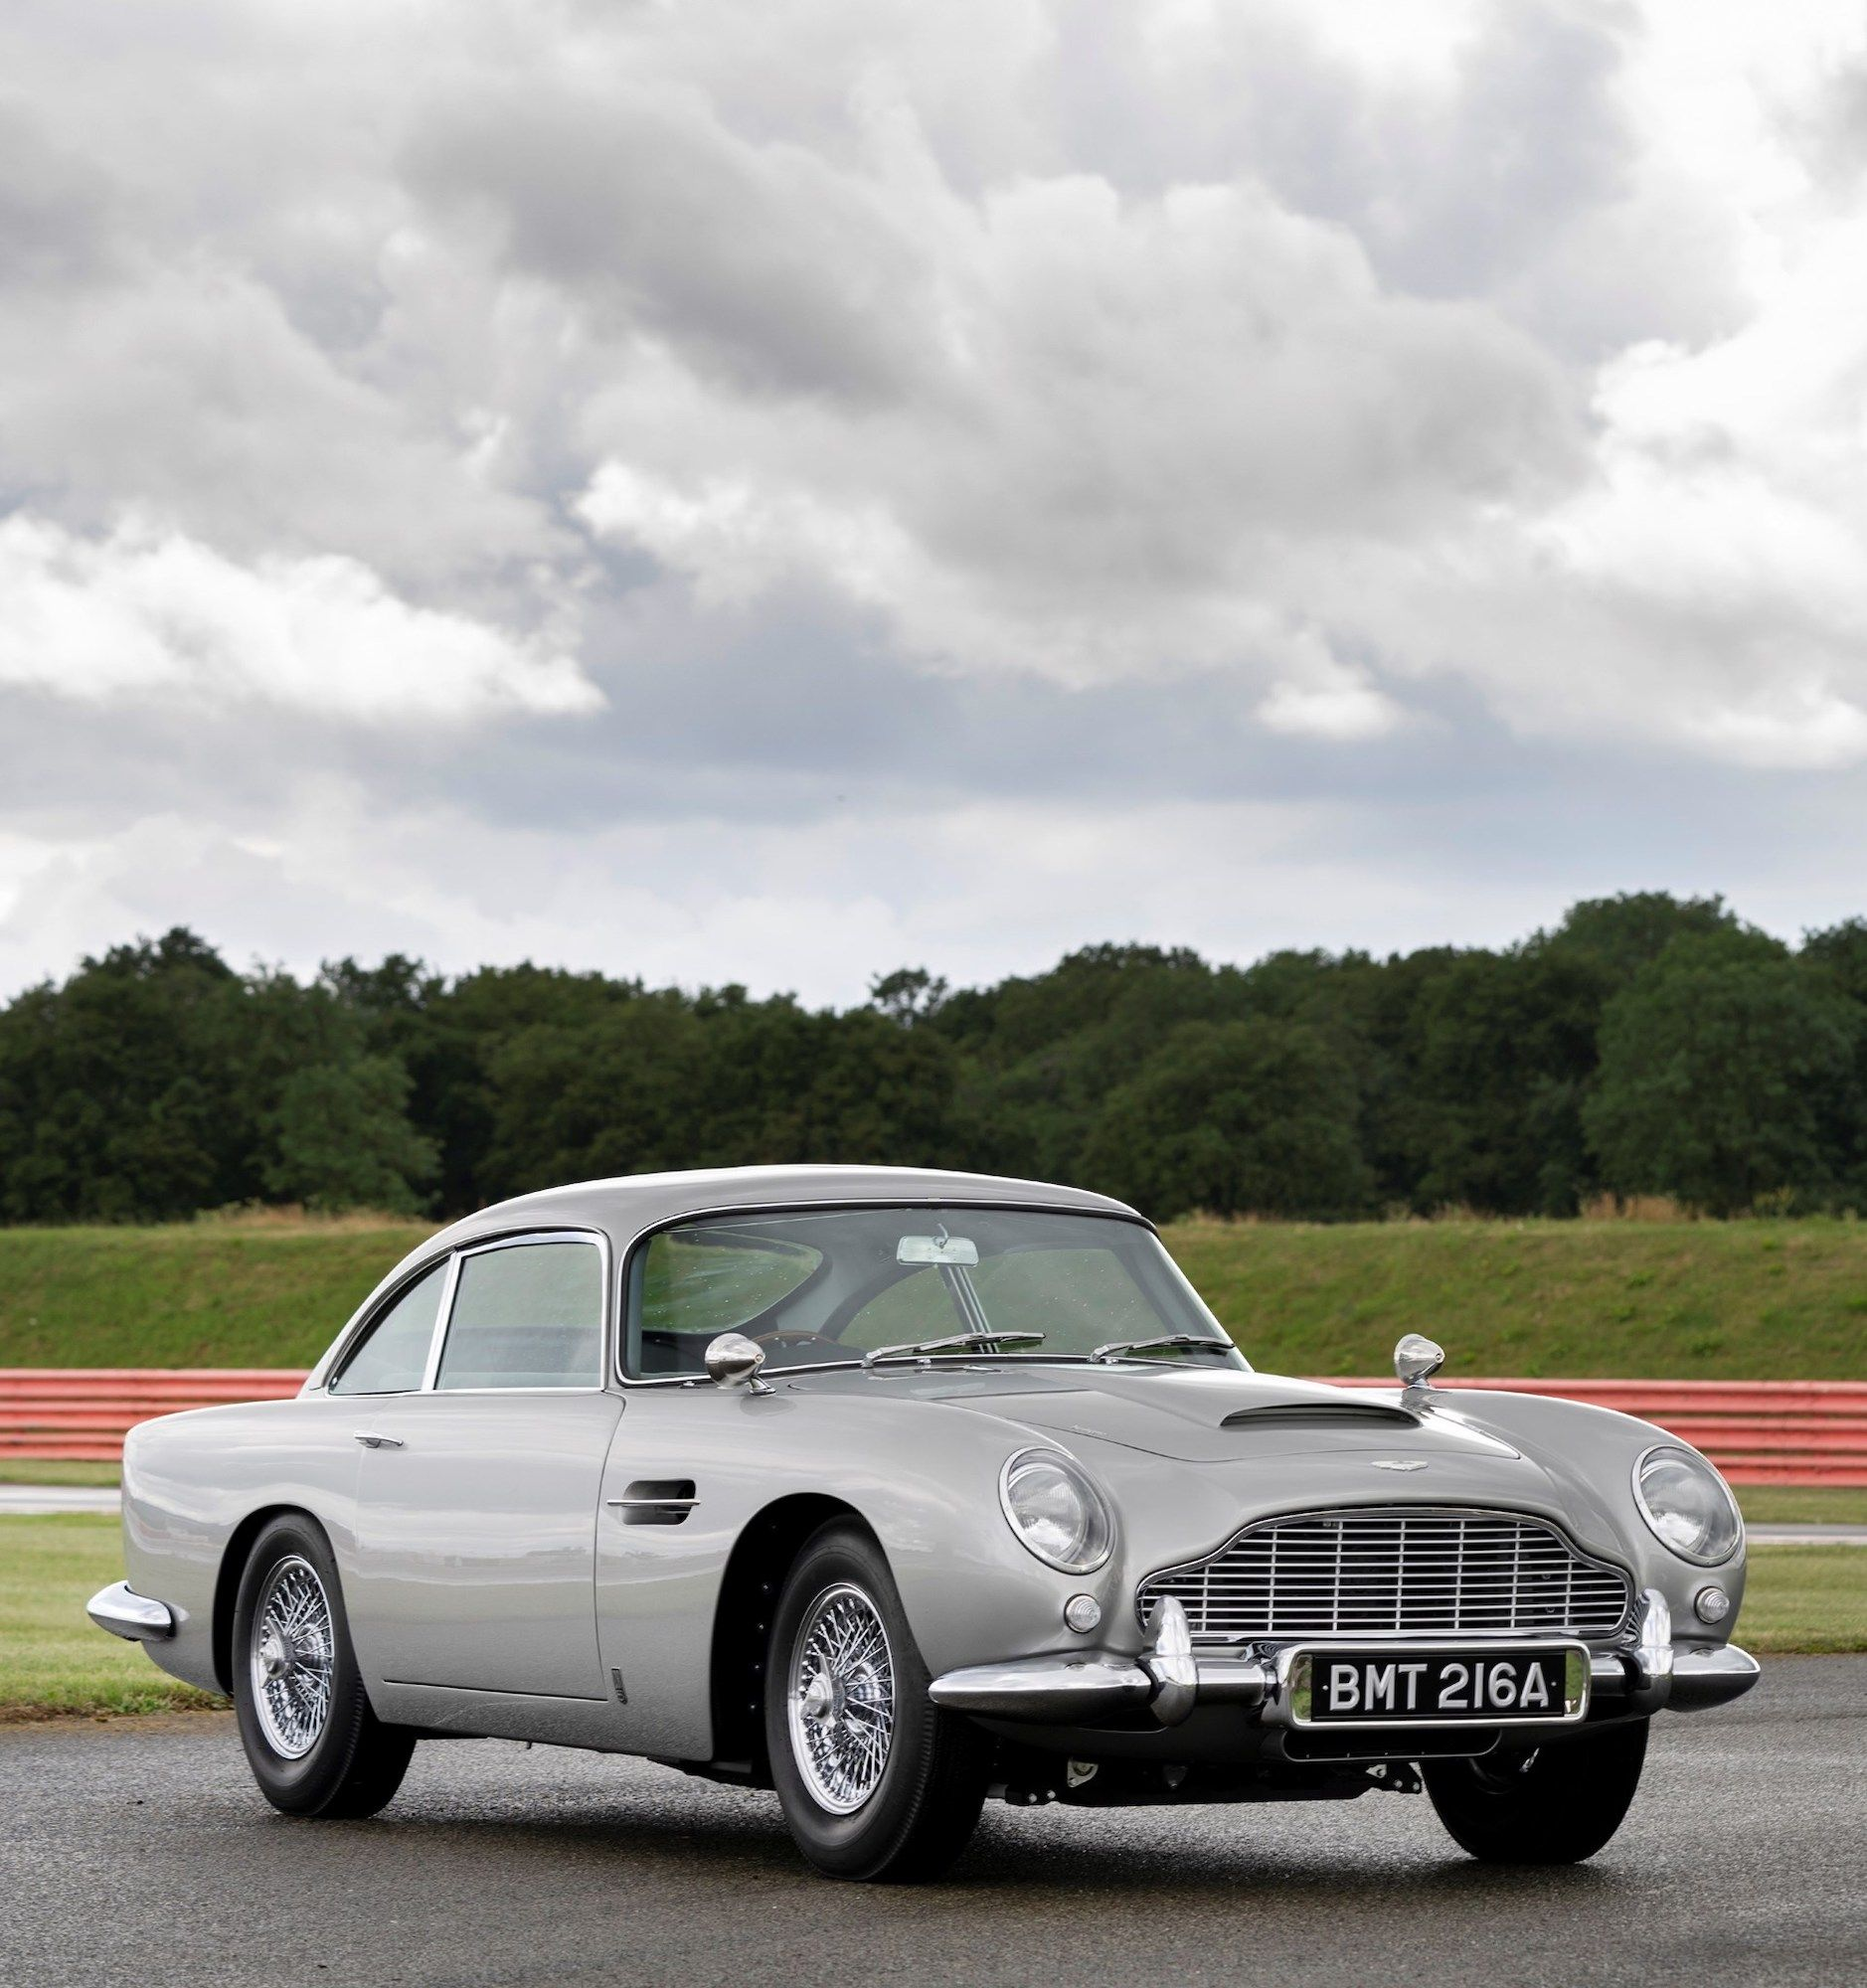 Finally, A New Aston Martin Limited Edition James Bond DB5